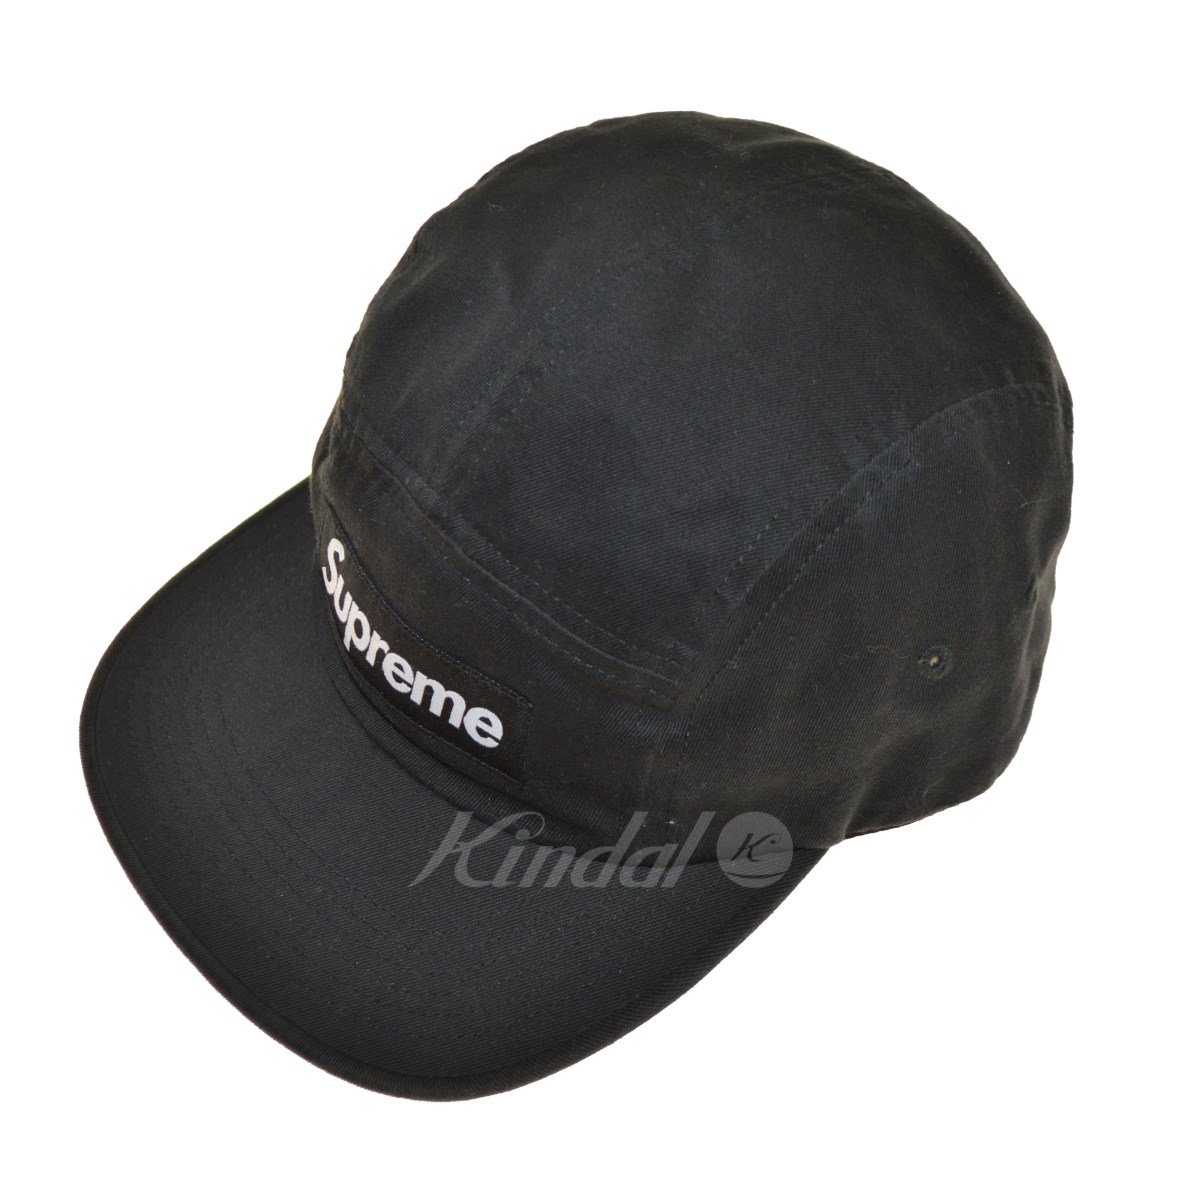 【中古】SUPREME 18AW Washed Chino Twill Camp Cap ボックスロゴキャップ 【送料無料】 【105309】 【KIND1550】